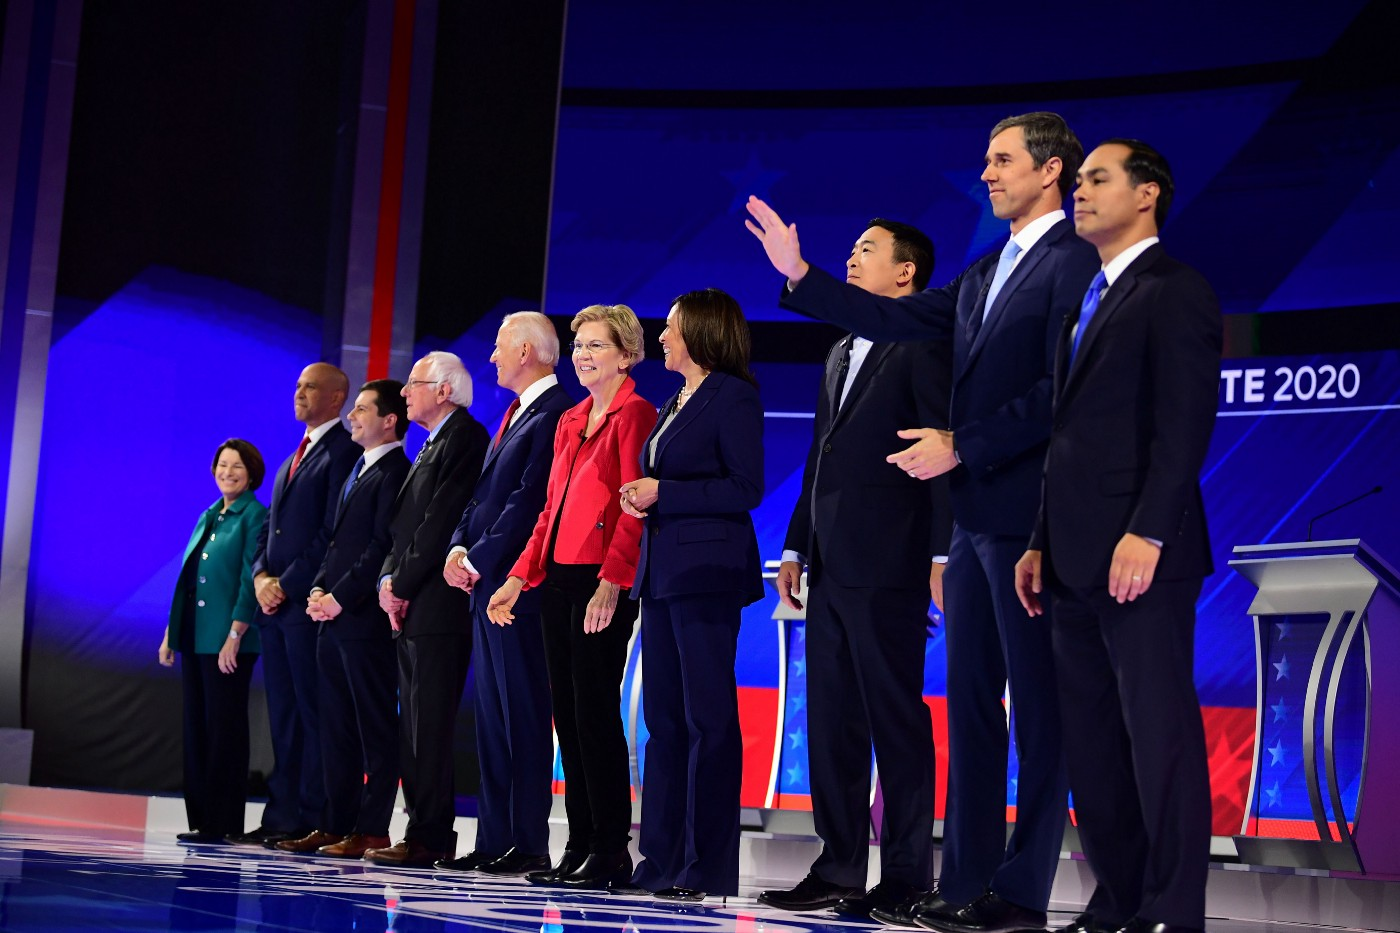 Democratic presidential hopefuls onstage ahead of the third Democratic primary debates for the 2020 presidential campaign.